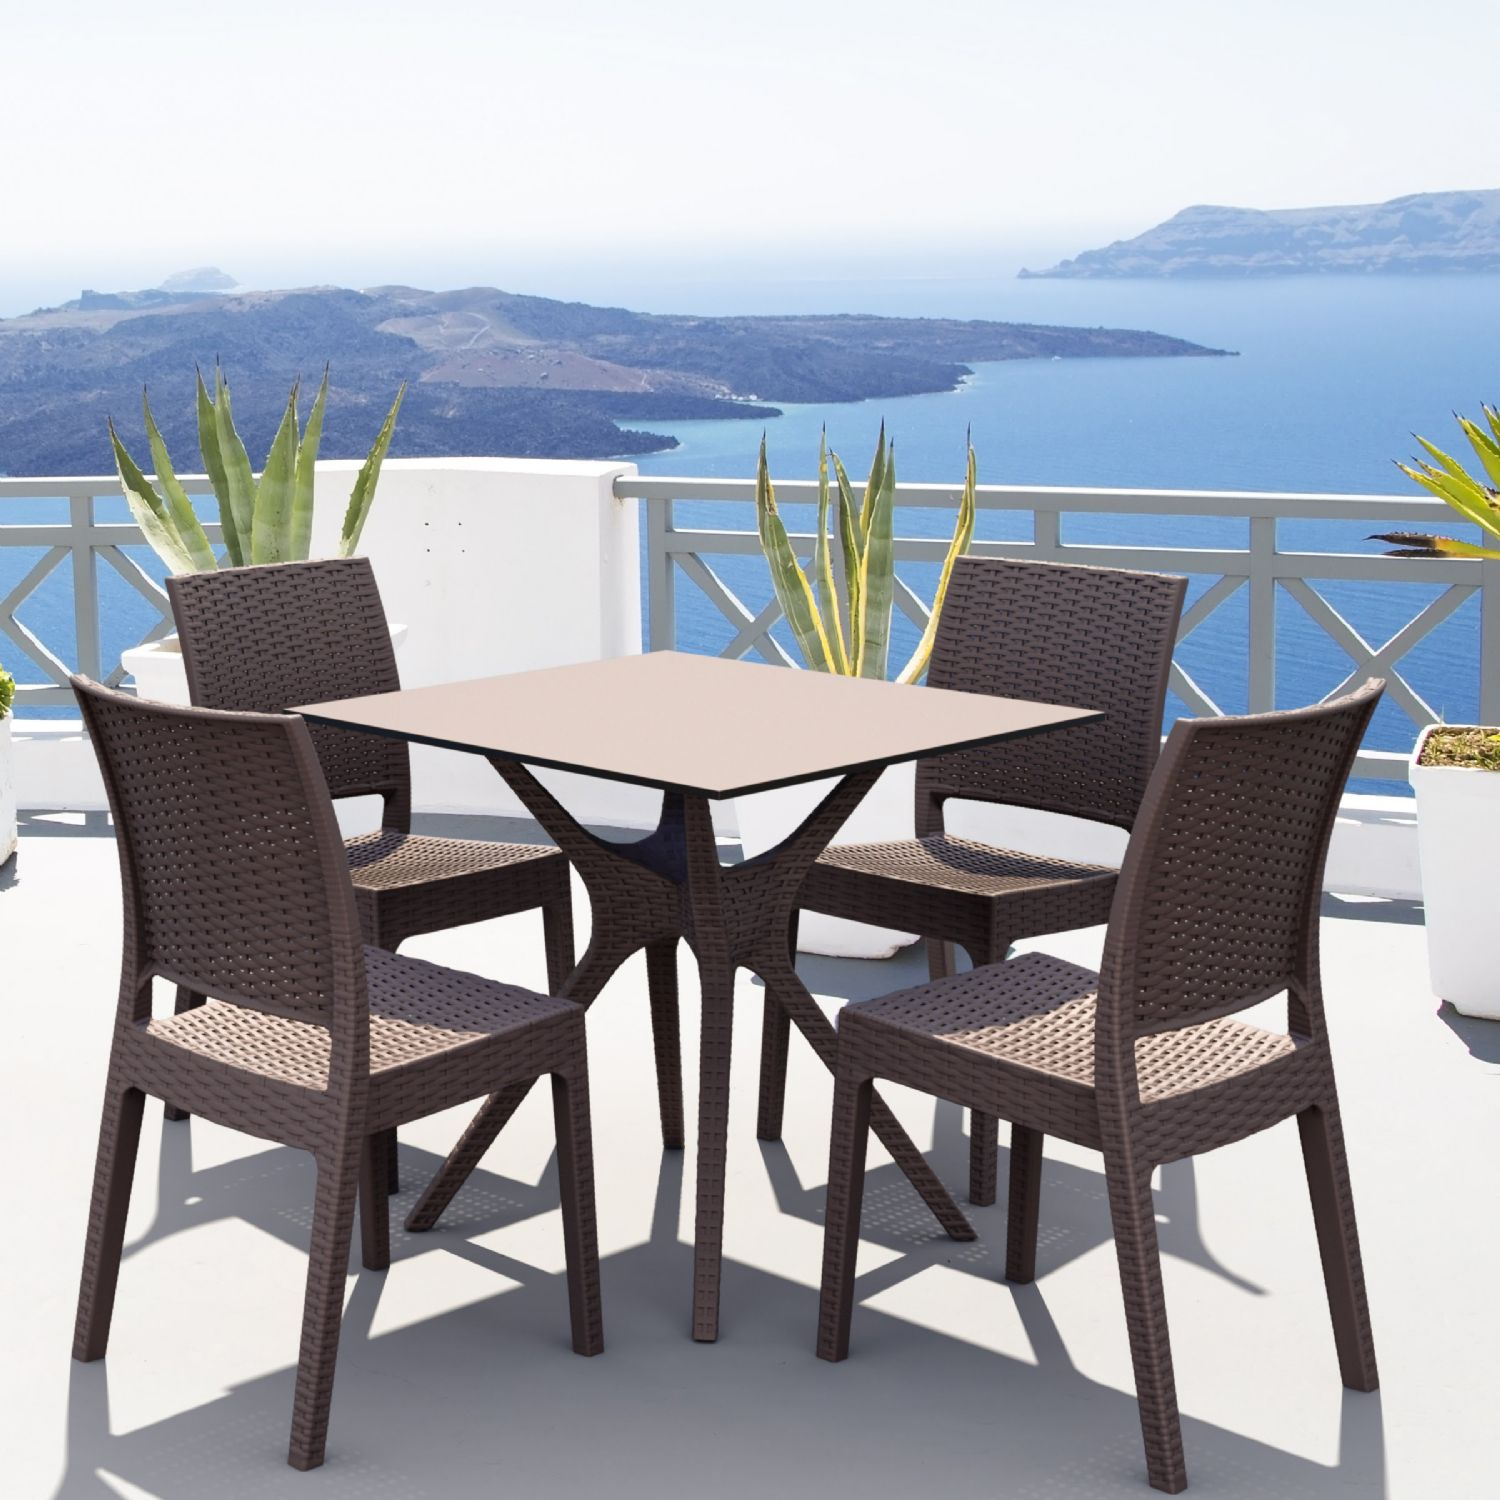 Ibiza Florida Square Patio Dining Set 5 Piece White ISP8631S-WH - 1